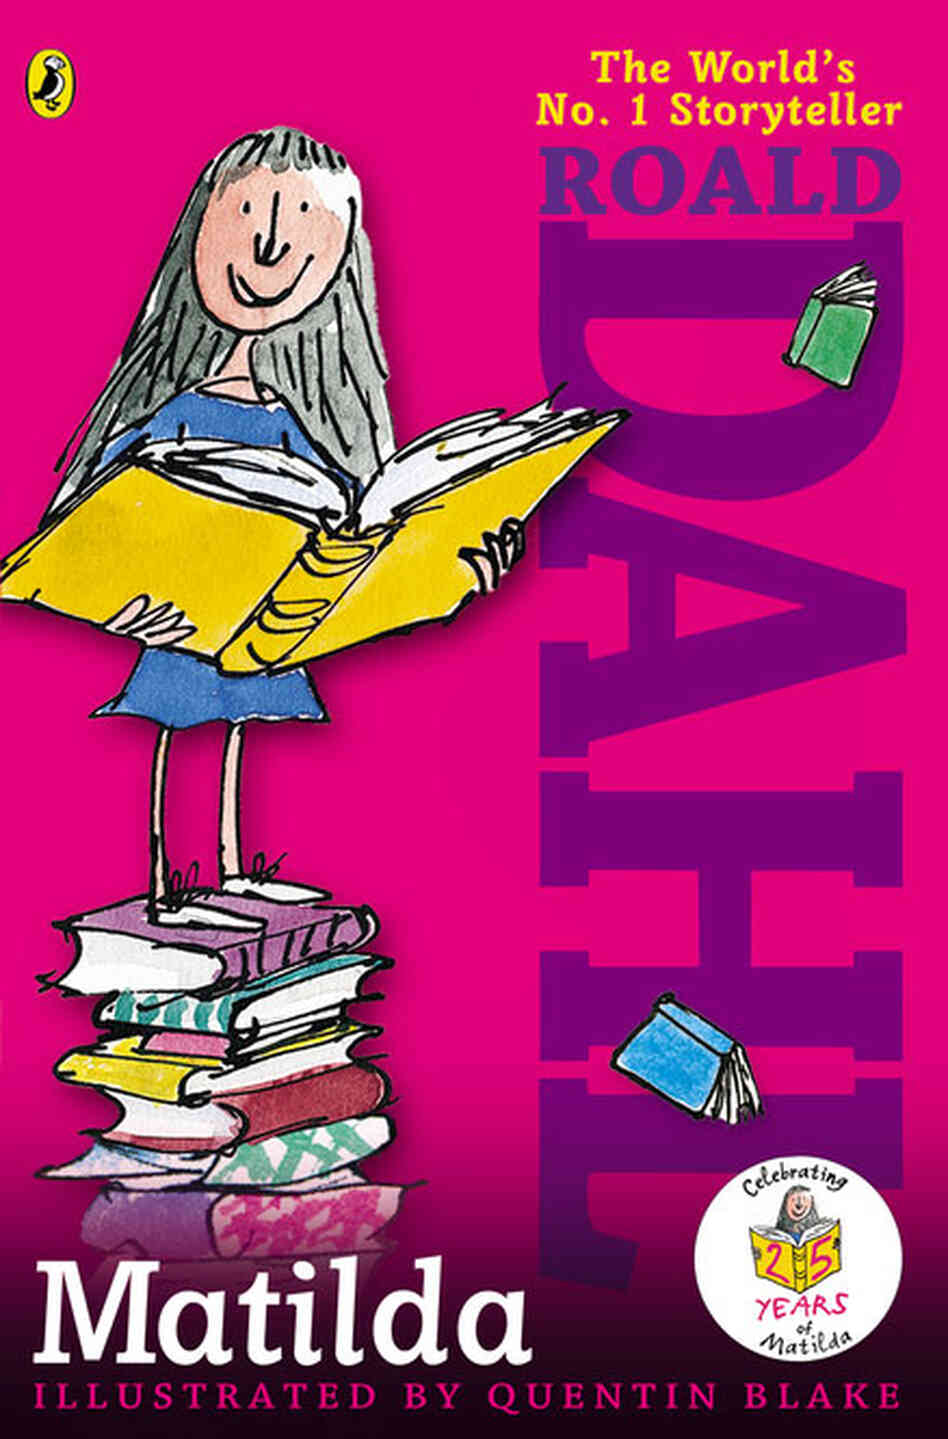 Roald Dahl Wanted His Magical 'Matilda' To Keep Books ...